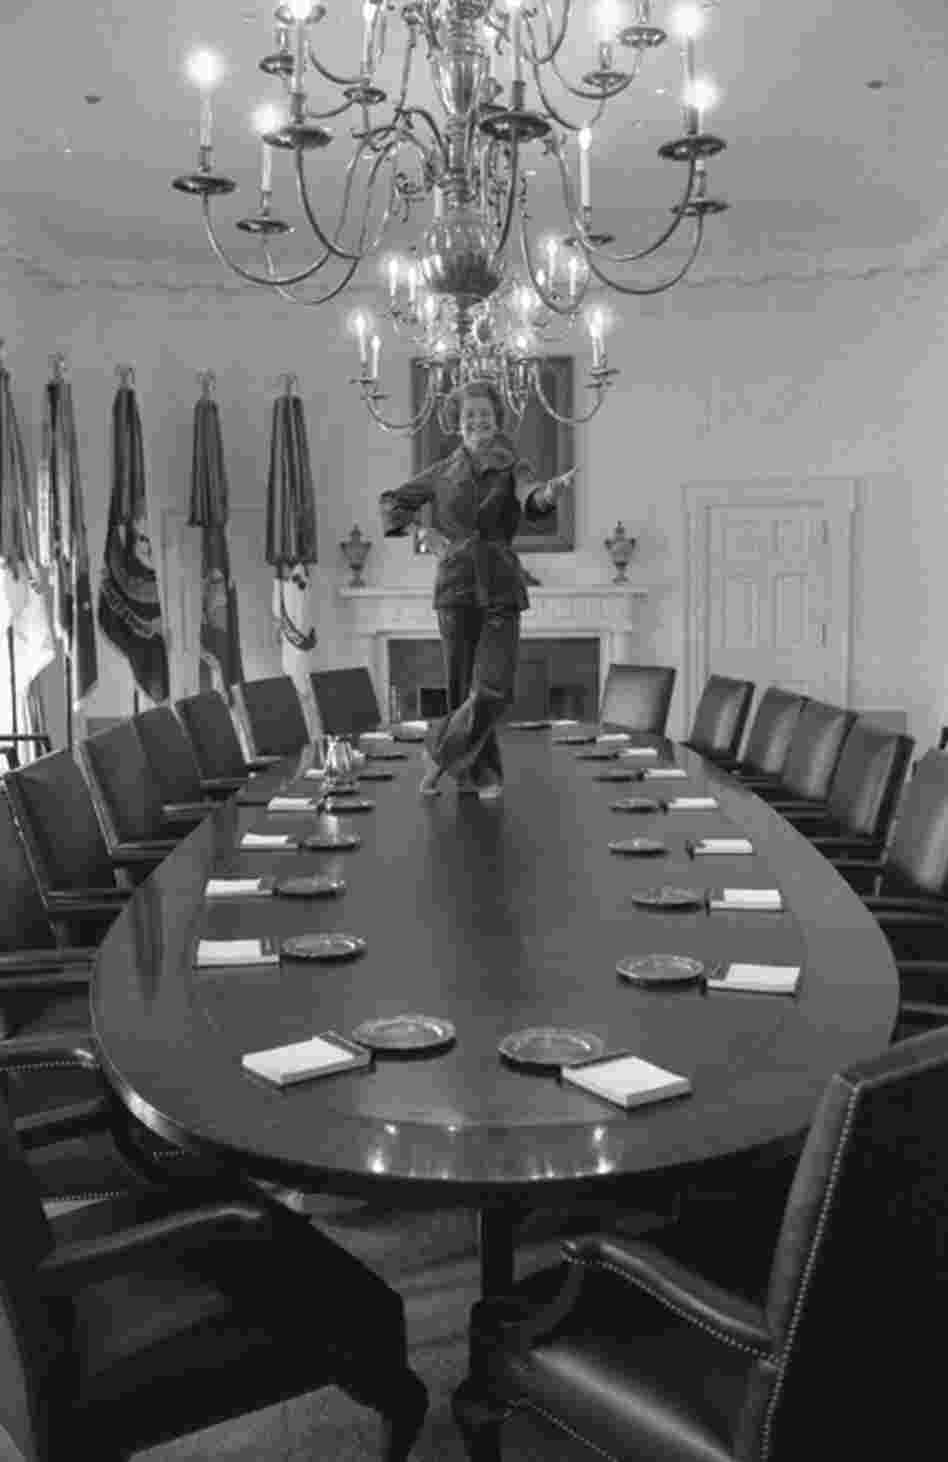 David Hume Kennerly made this picture the day before the Carters moved into the White House. Taking a last tour of the West Wing, Betty Ford told him she'd always wanted to dance on the Cabinet Room table. A former Martha Graham dancer, she slipped off her shoes, hopped on the table and struck a pose.